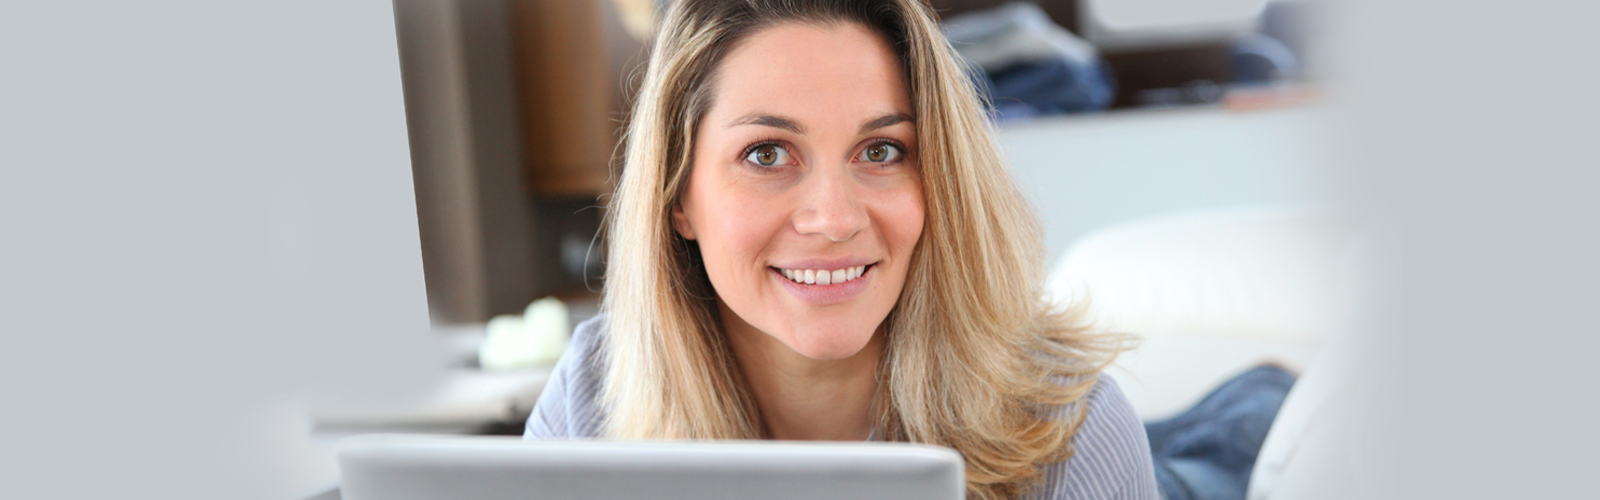 Woman at computer taking online training